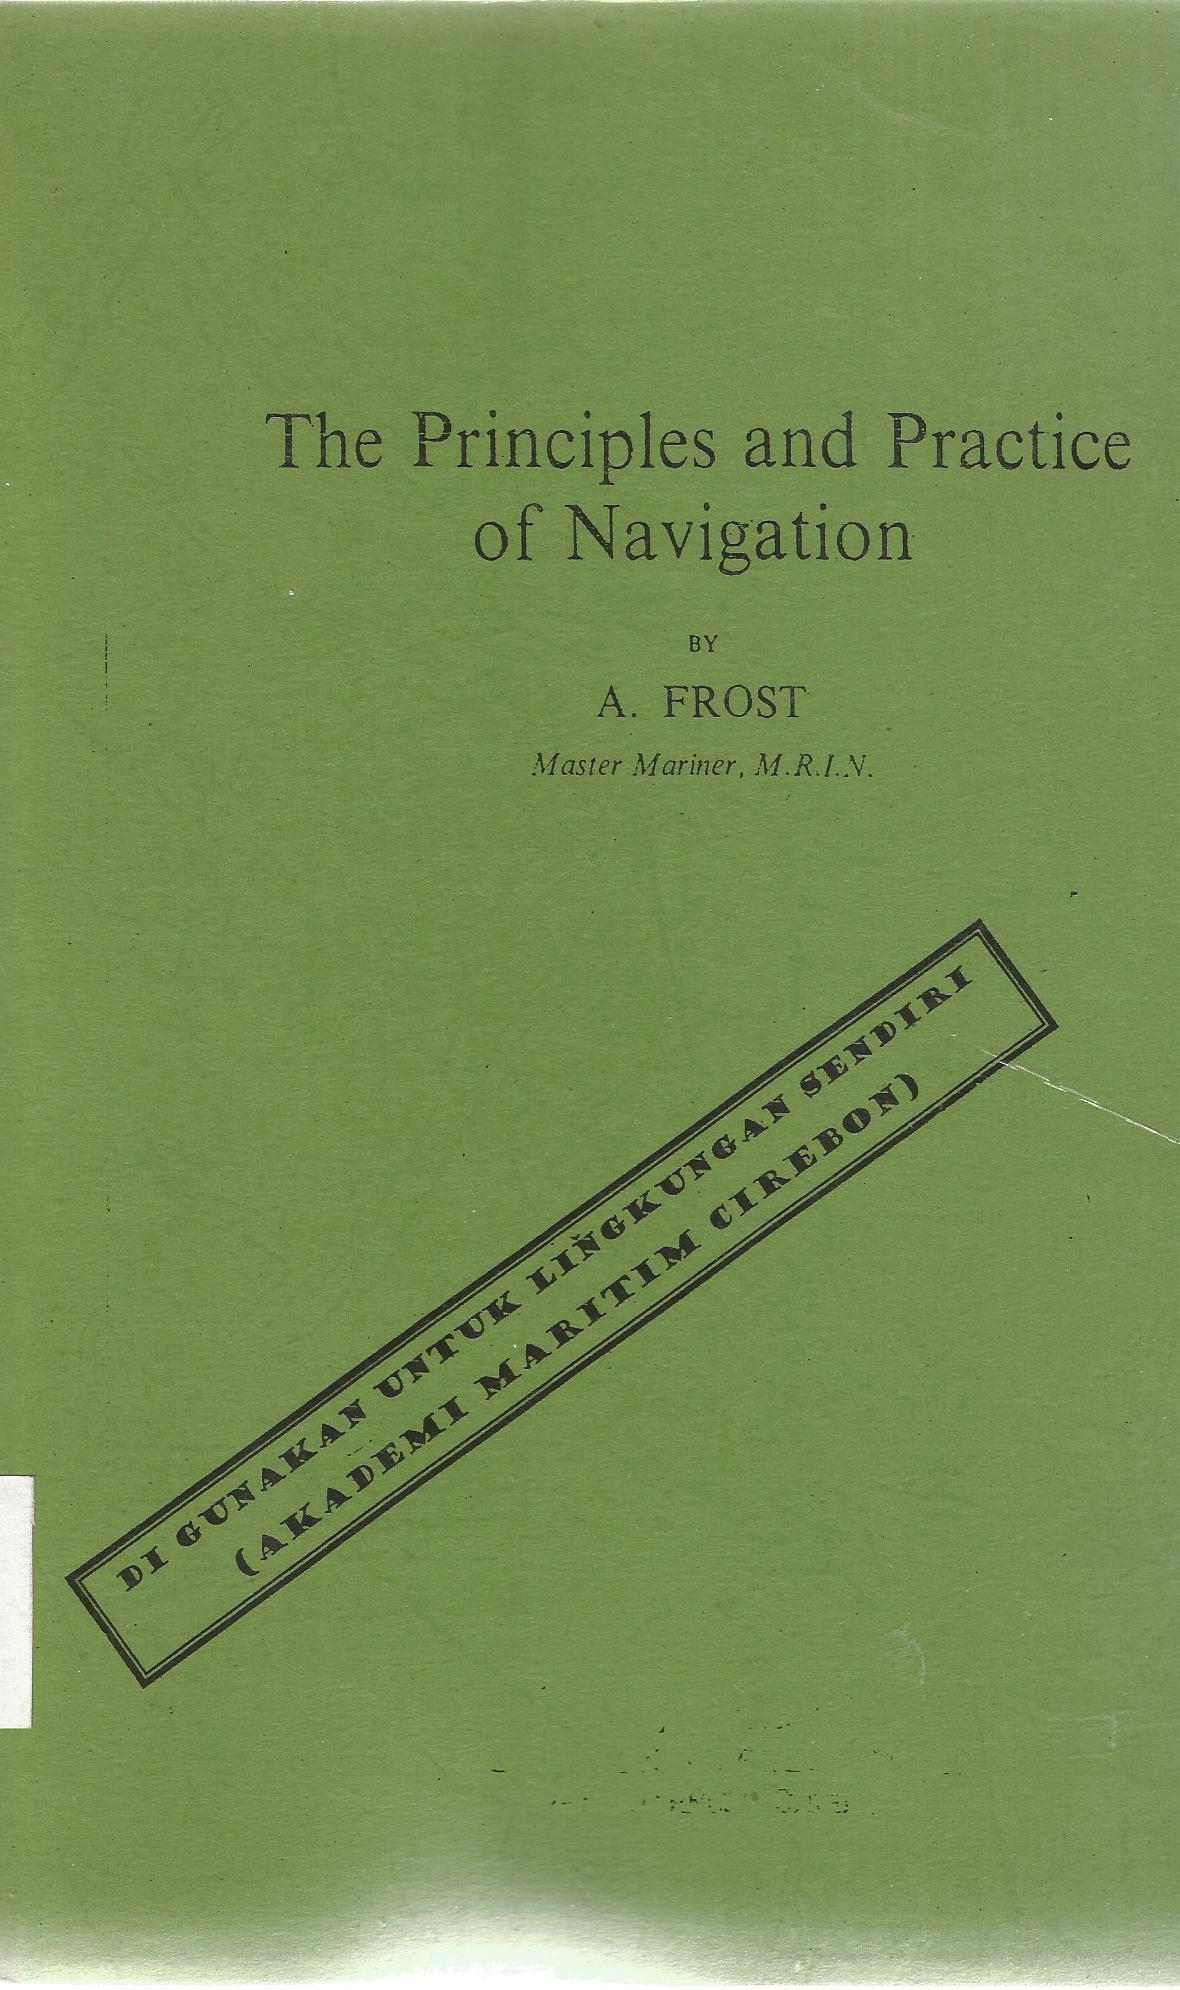 THE PRINCIPLE AND PRACTICE OF NAVIGATION